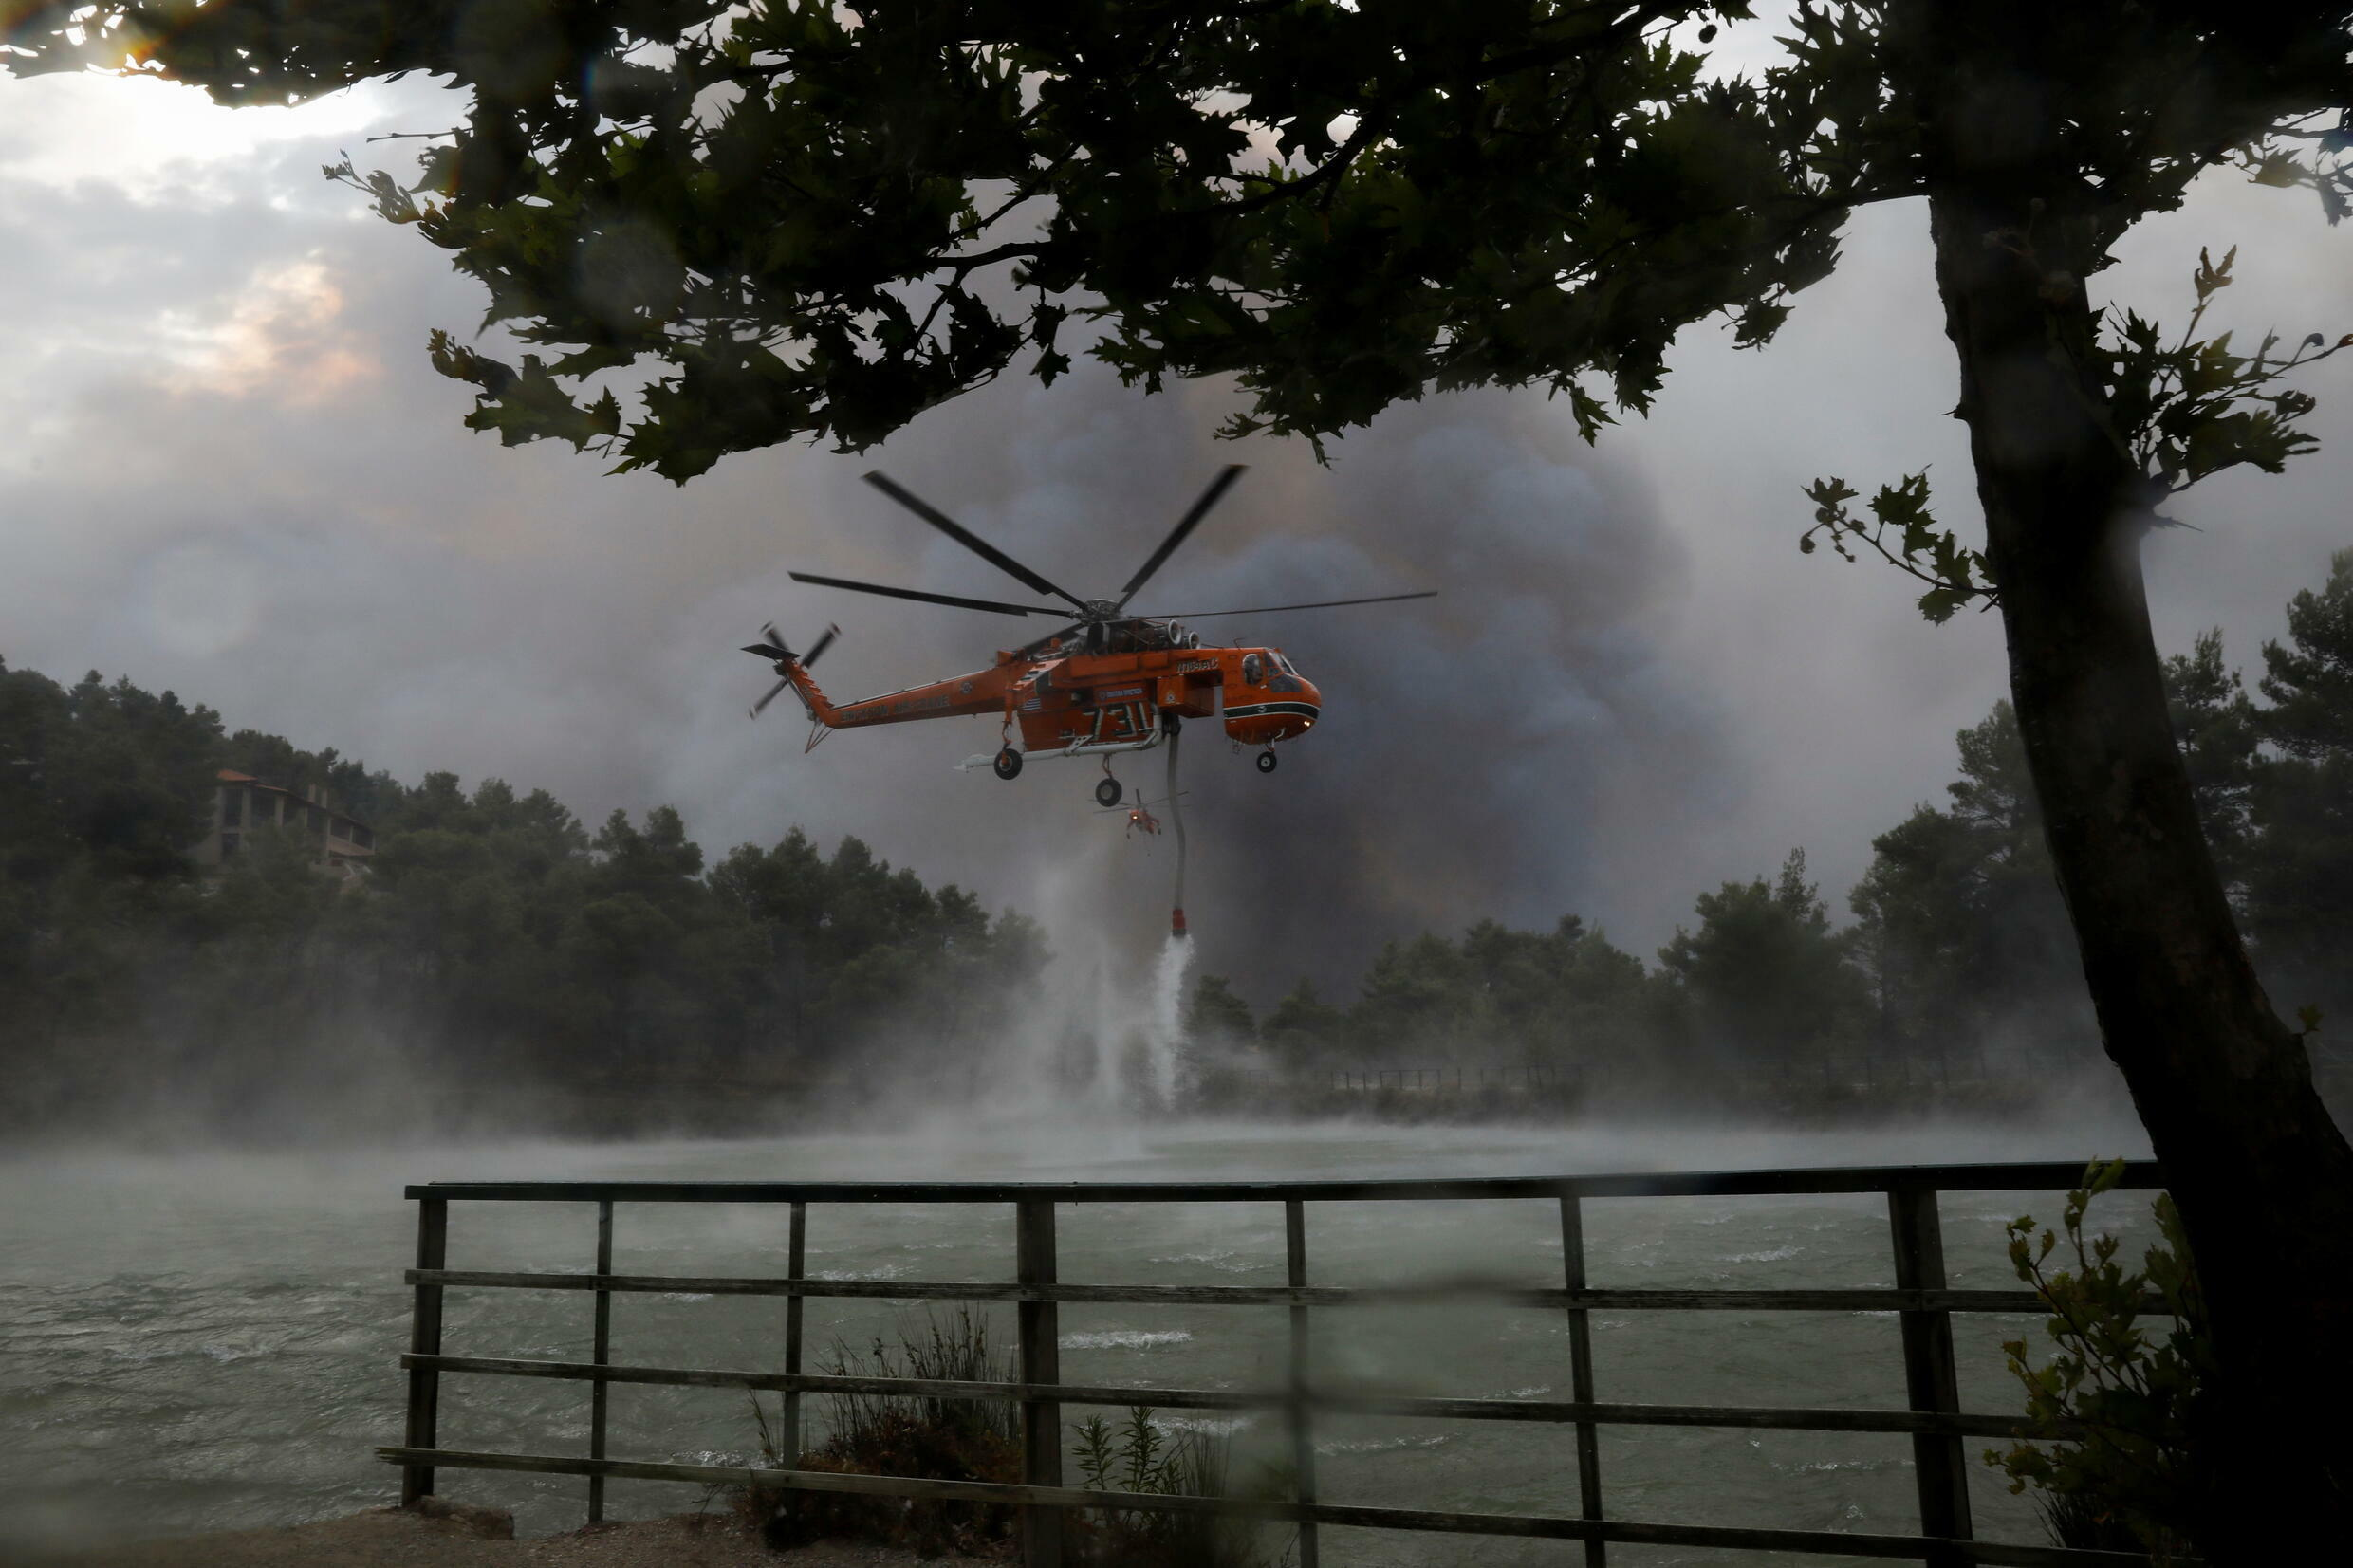 2021-08-06T084657Z_994349520_RC2HZO9G9BWH_RTRMADP_3_EUROPE-WEATHER-GREECE-WILDFIRES